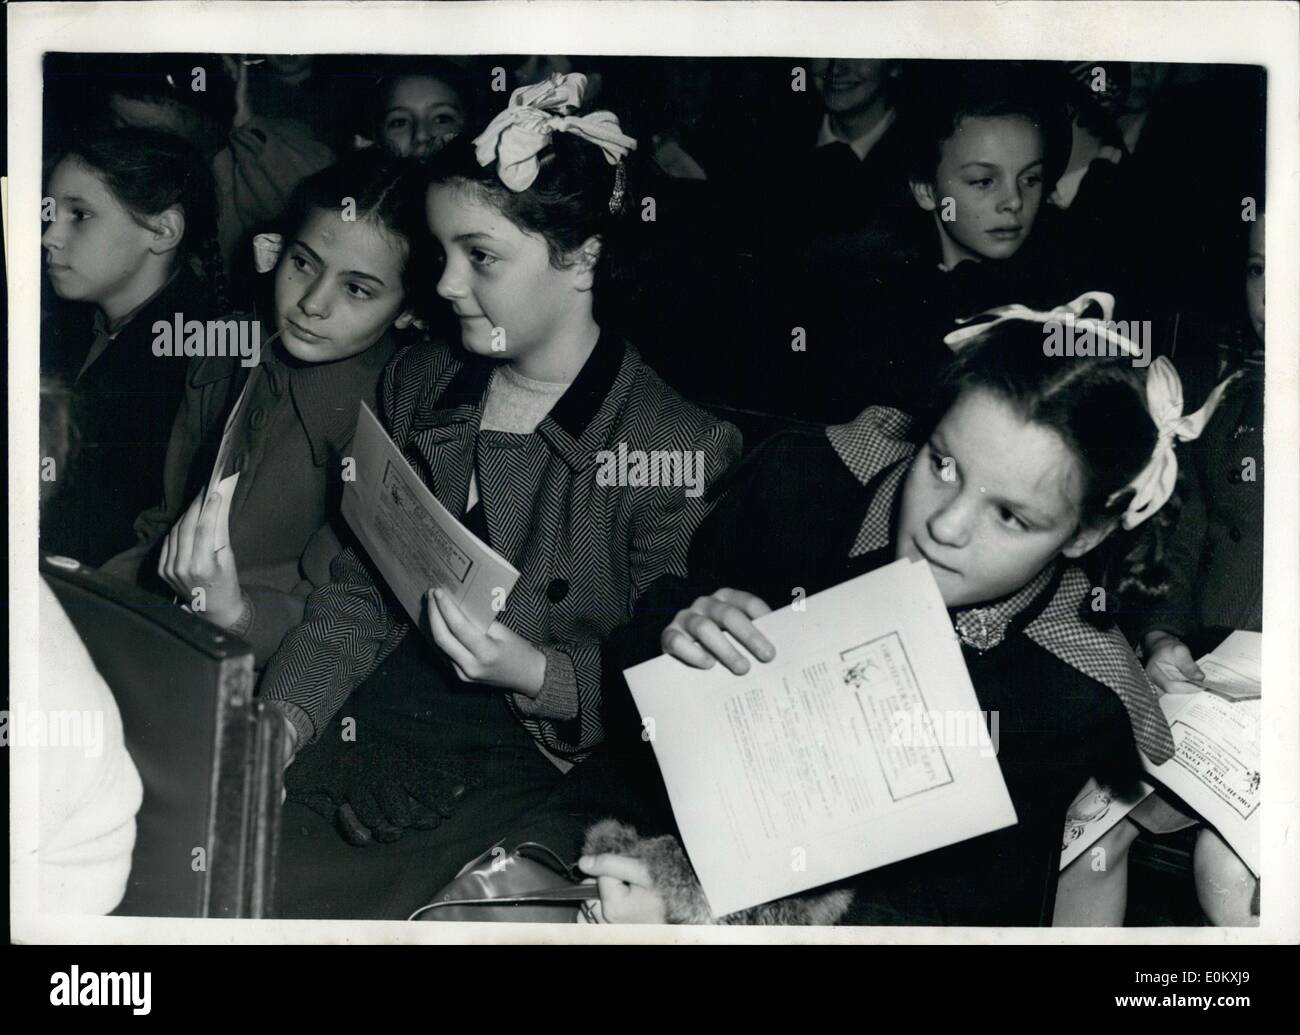 Oct. 10, 1952 - Anniversary concert : The Robert Mayer concerts for Children today celebrated their 25th. anniversary at the Central Hall, Westminster. Photo shows Robert Mayer, seen discussing the programme to ( L to R), Carol Sullivan, 9, Penelope Jolly, 9 and Margaret Huggin, 10 - all of Gough's Osk, Herts - Prior to today's concert. - Stock Image